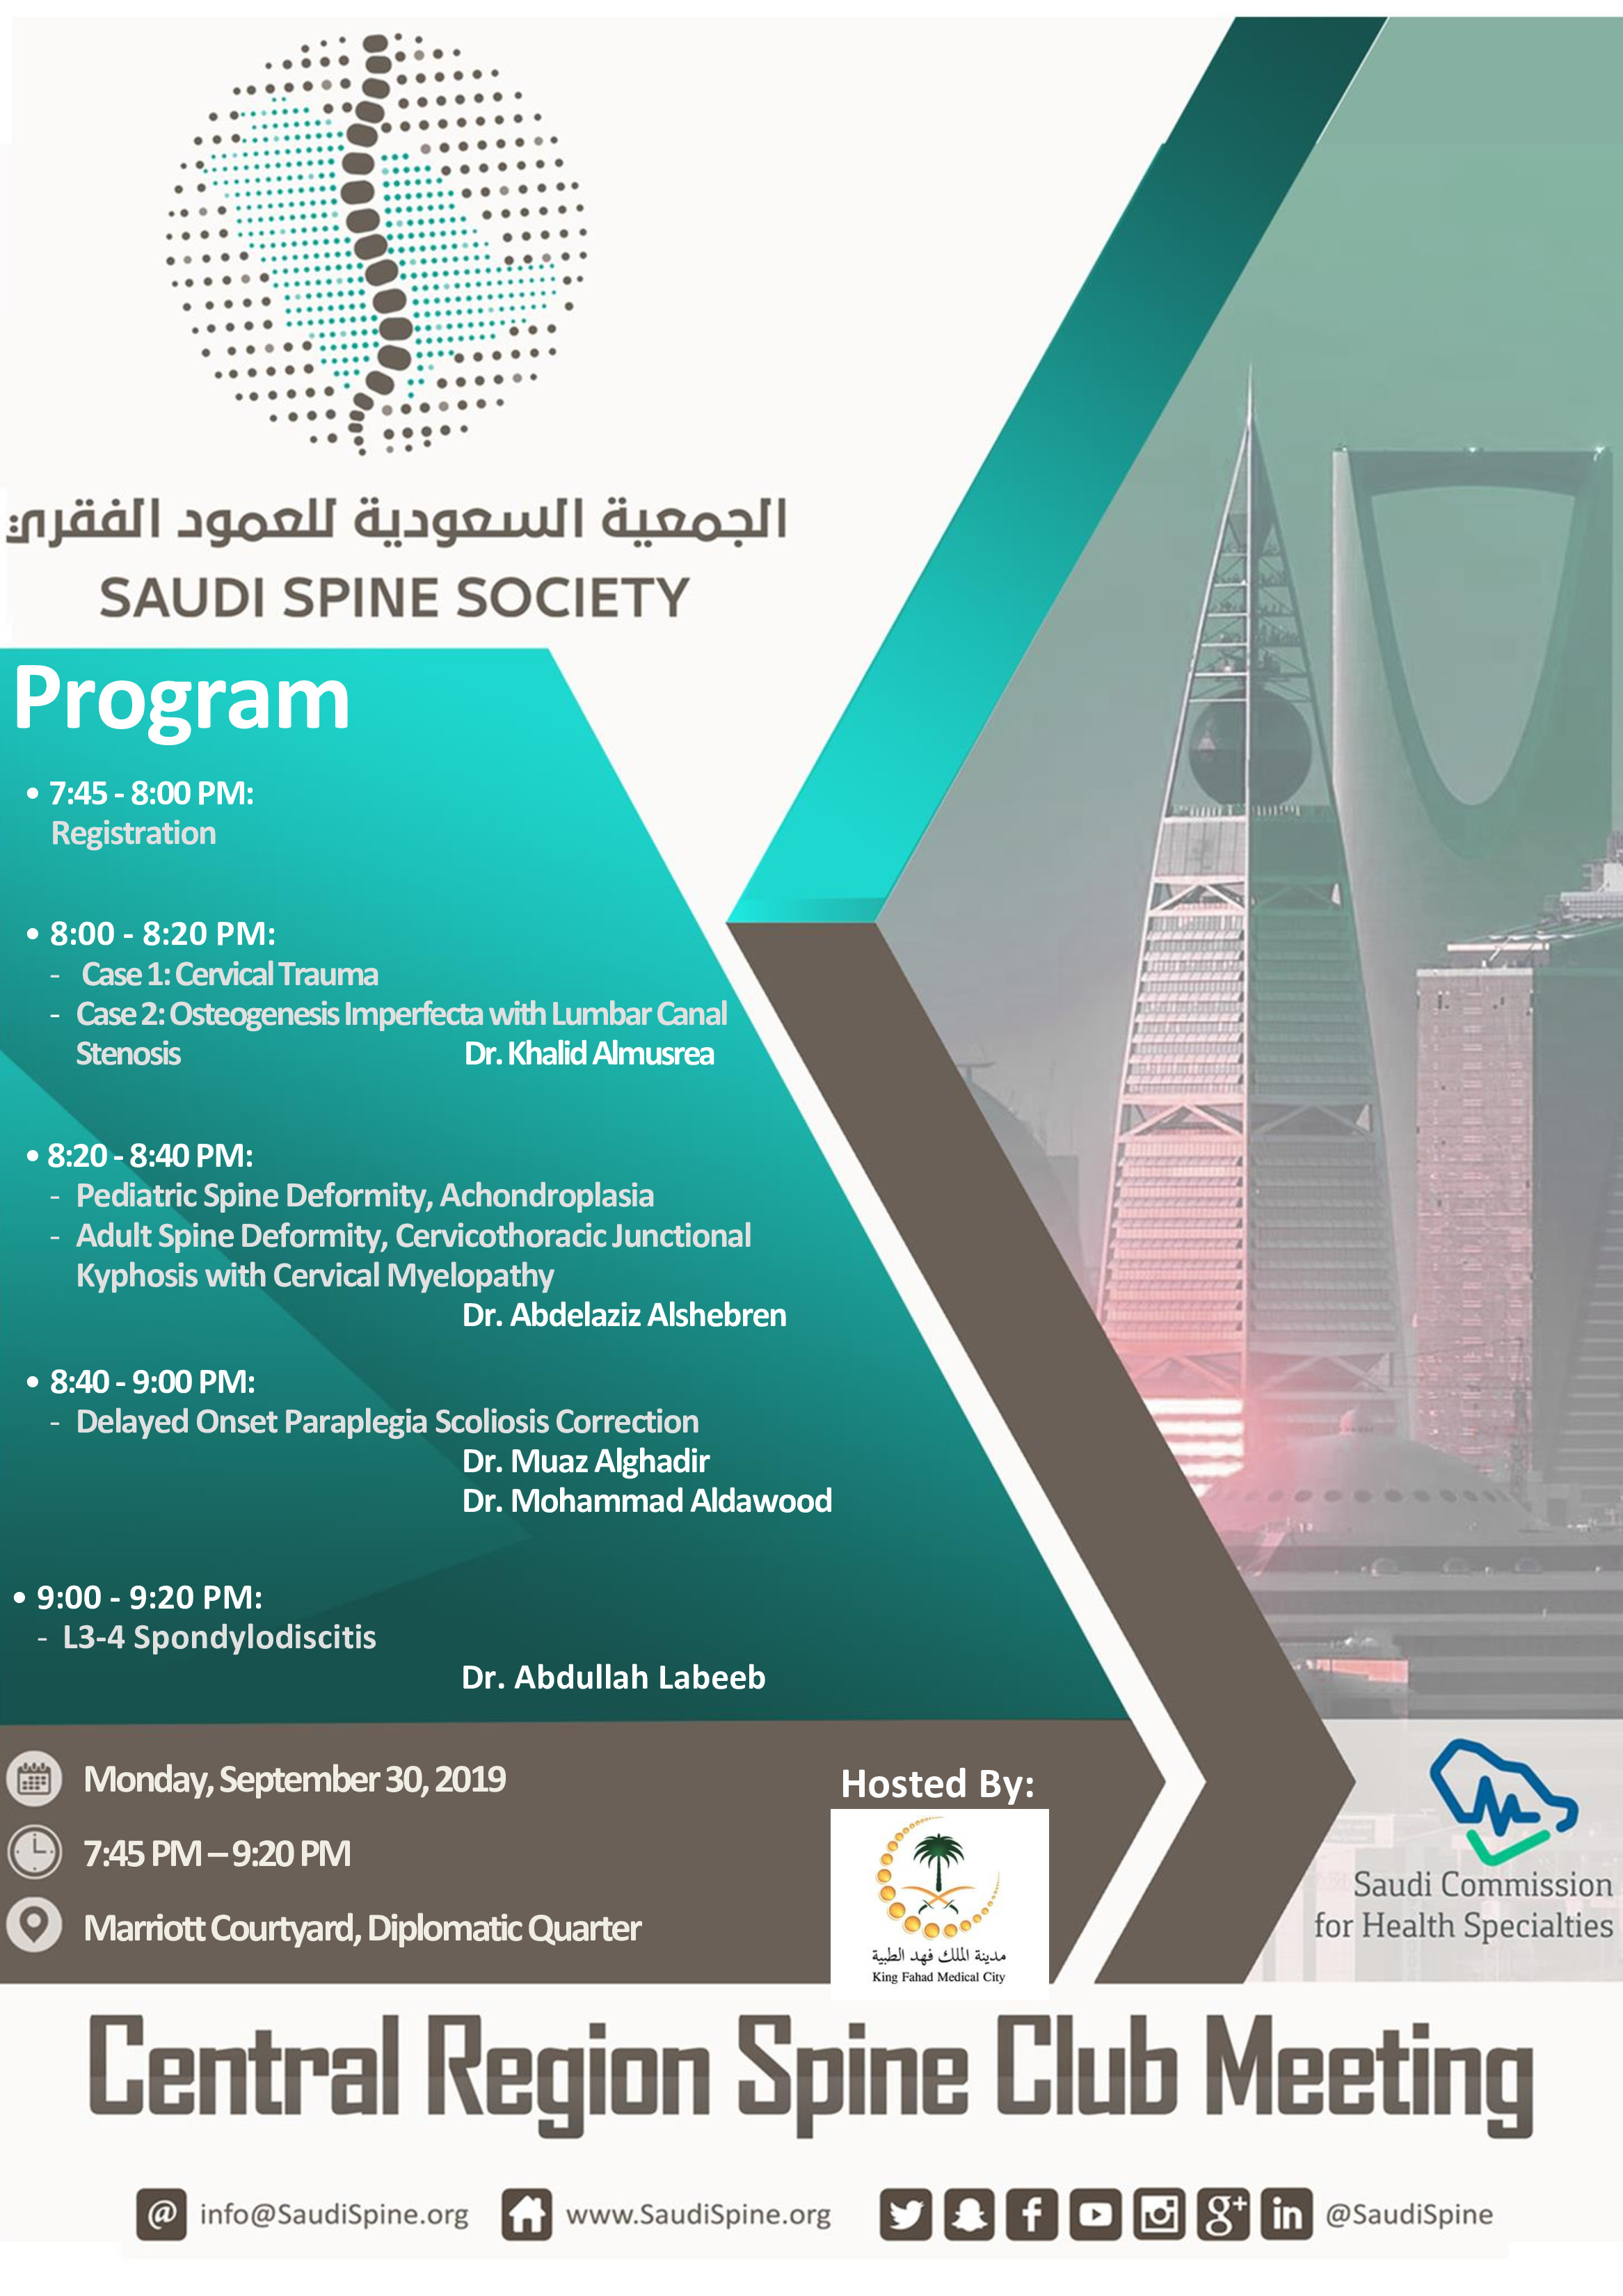 8th Central Region Spine Club Meeting